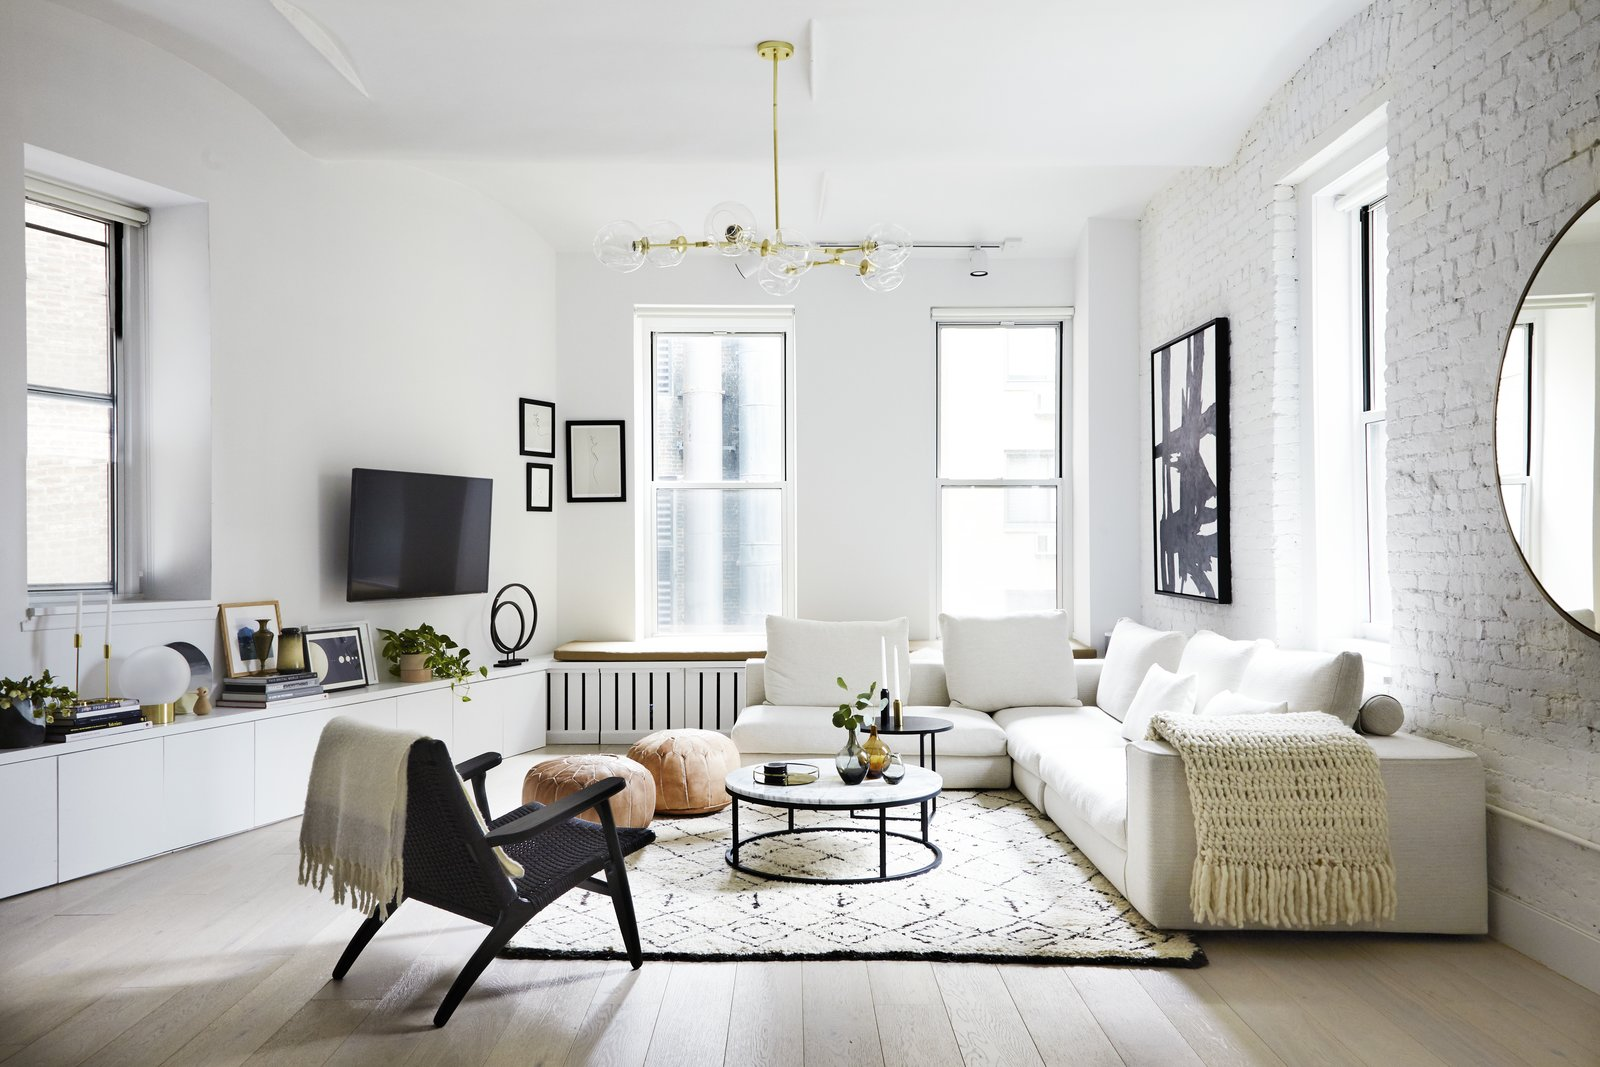 Interieur Design Free Tour An Insanely Stylish Nyc Loft With Major Scandinavian